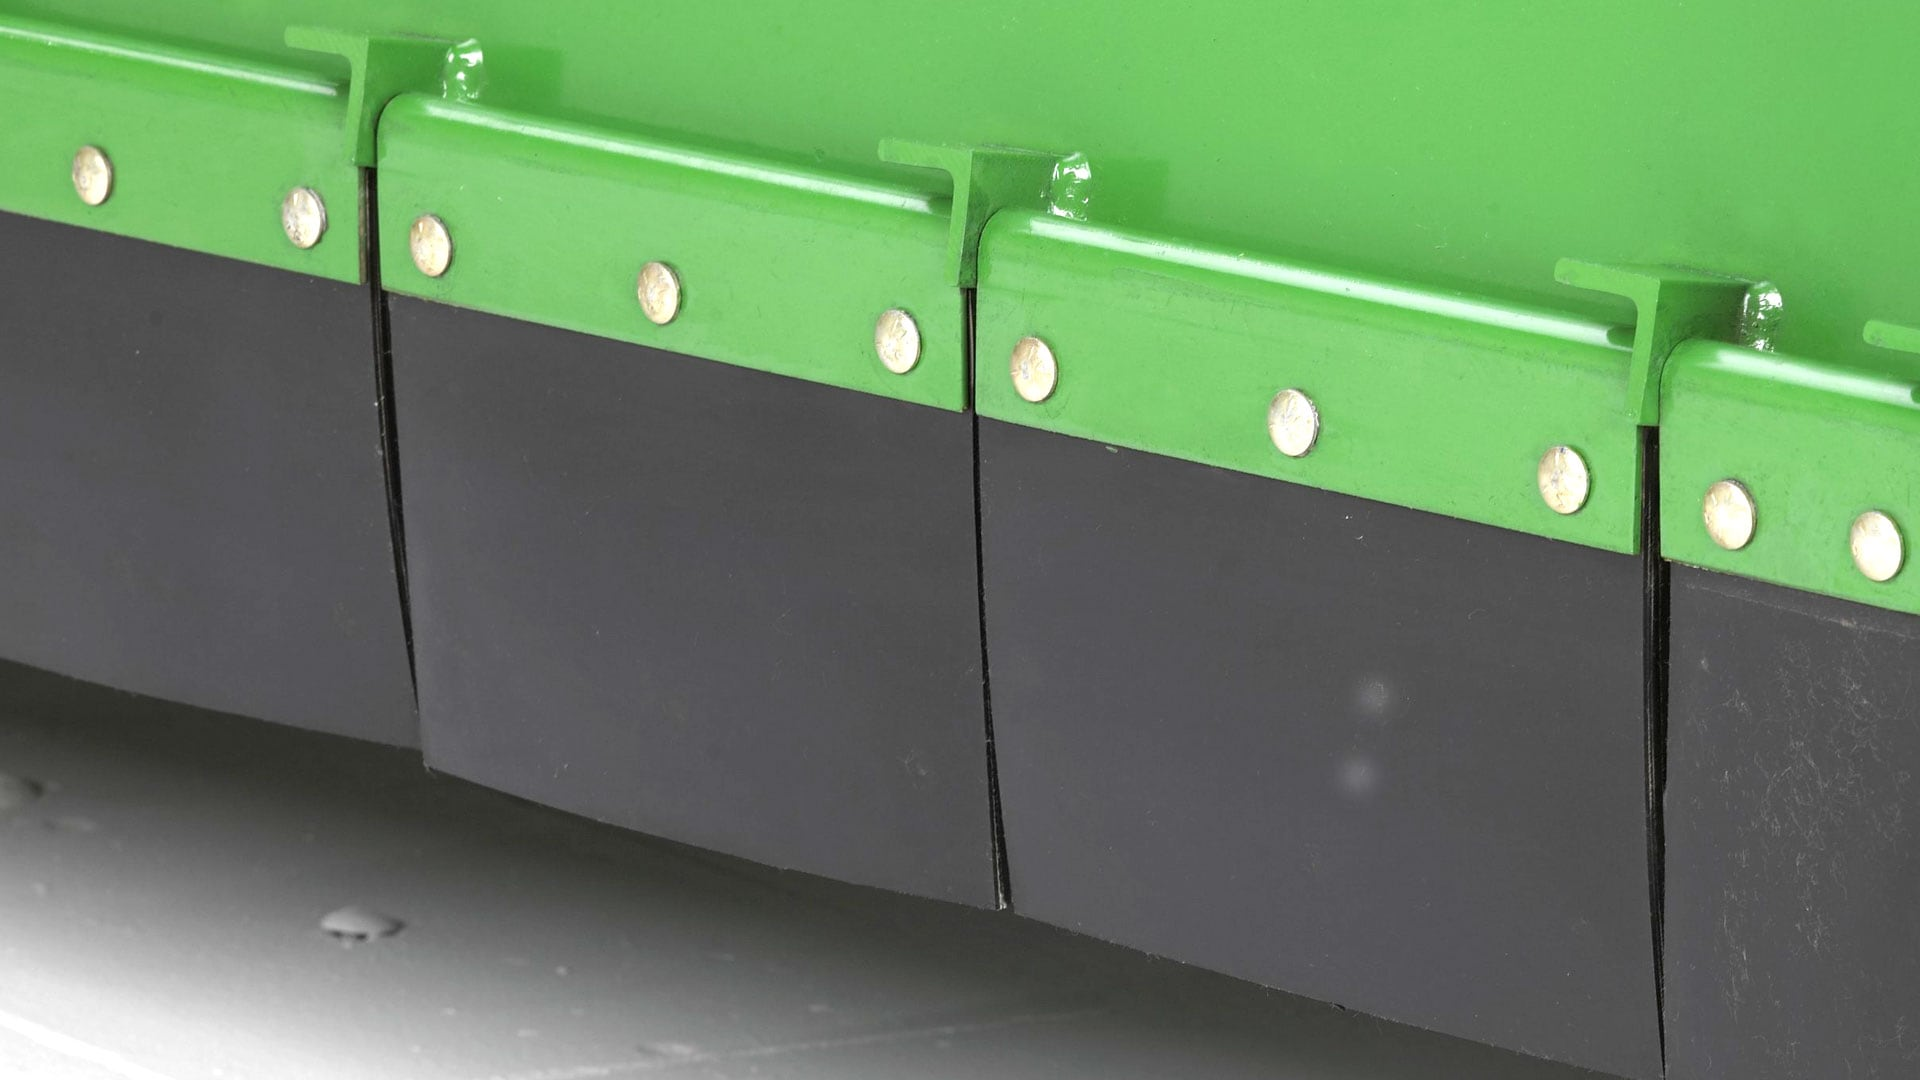 close up view of rubber deflectors